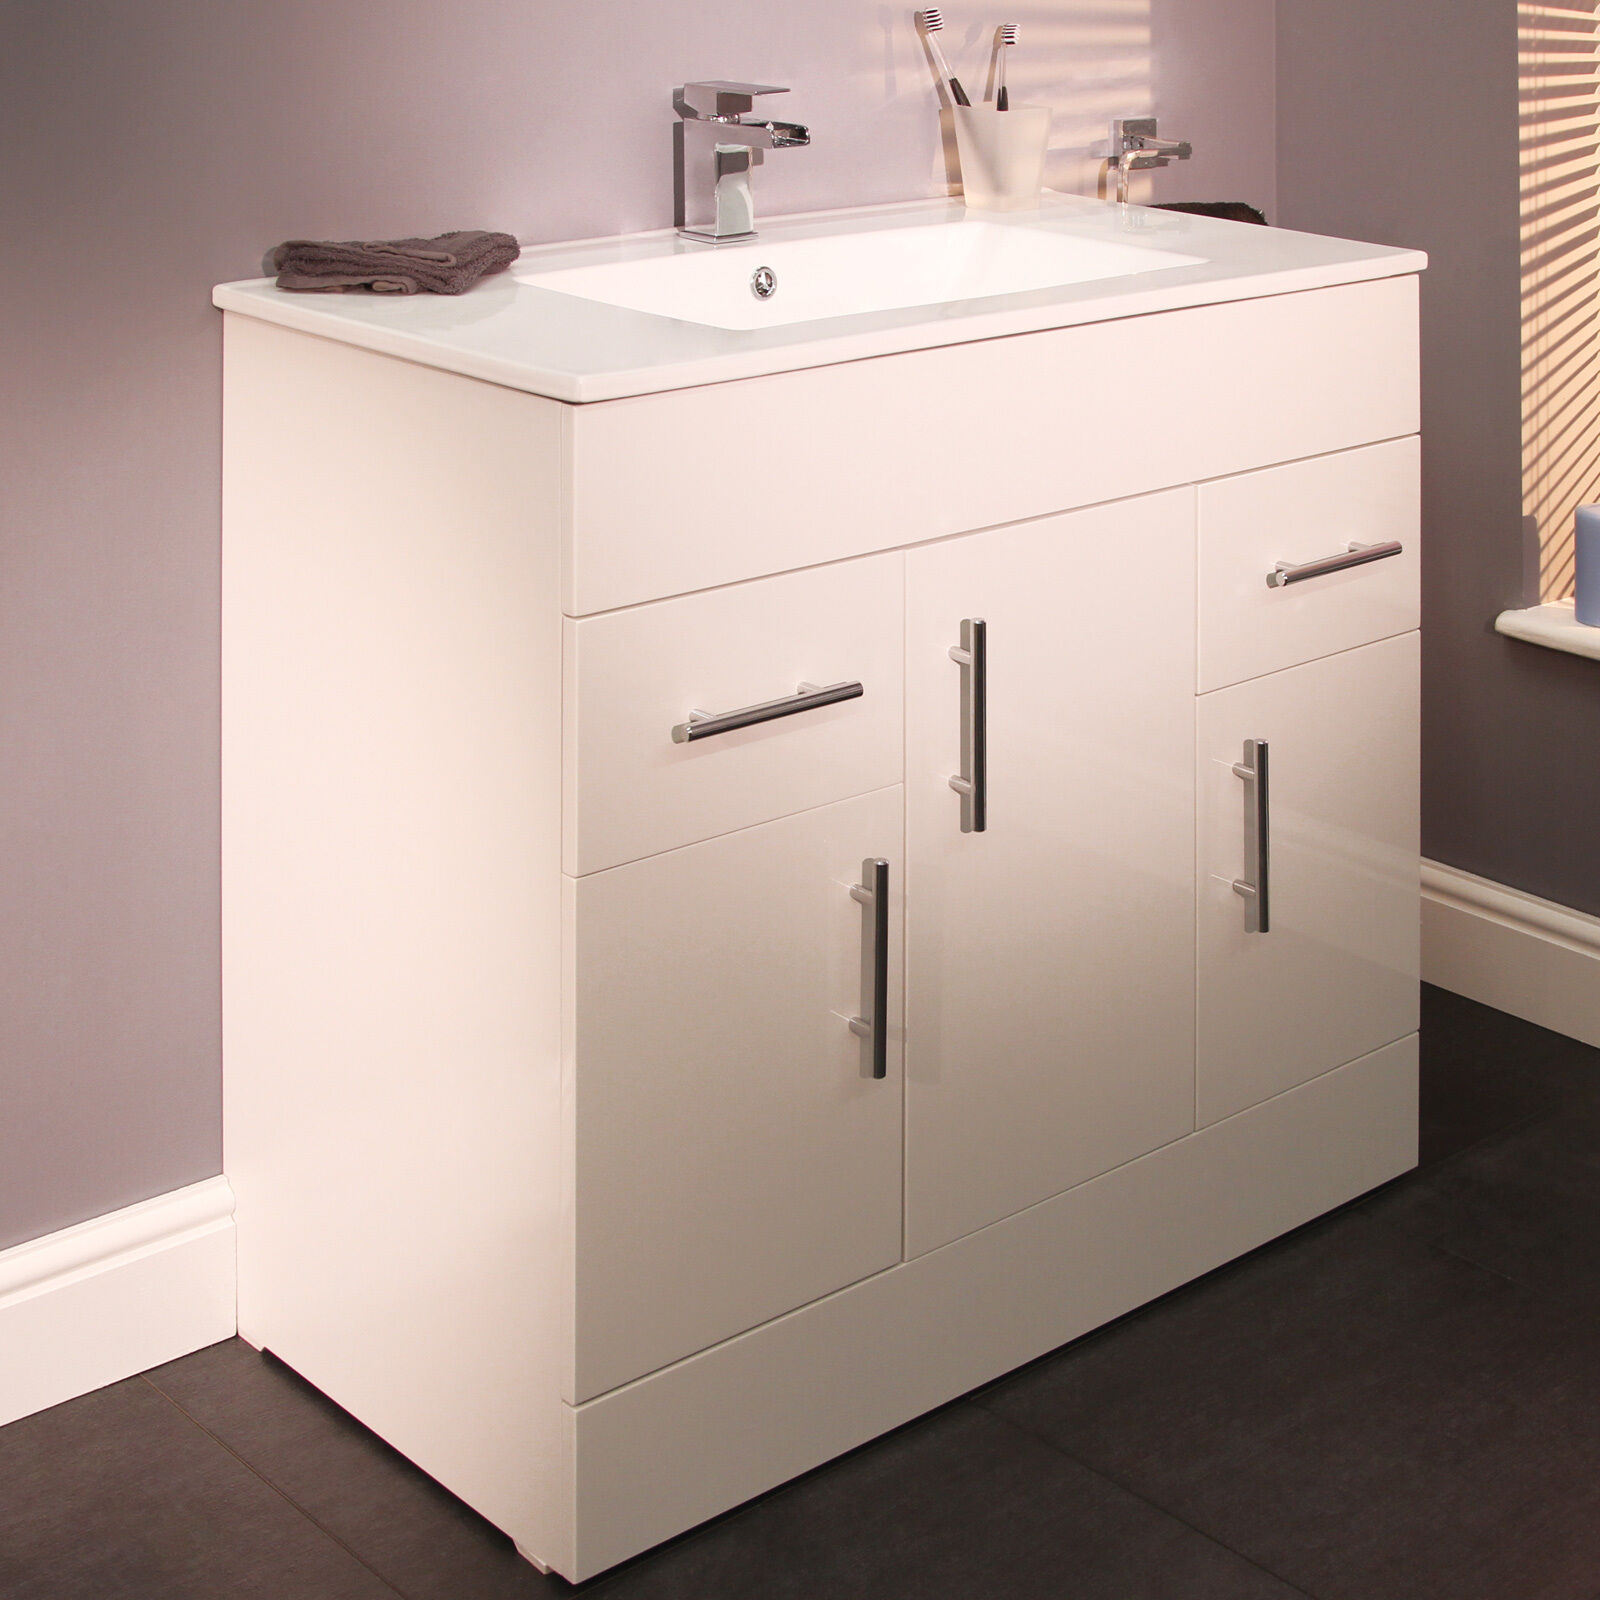 High gloss bathroom cabinets white specially for for Kitchen cabinets 900mm high